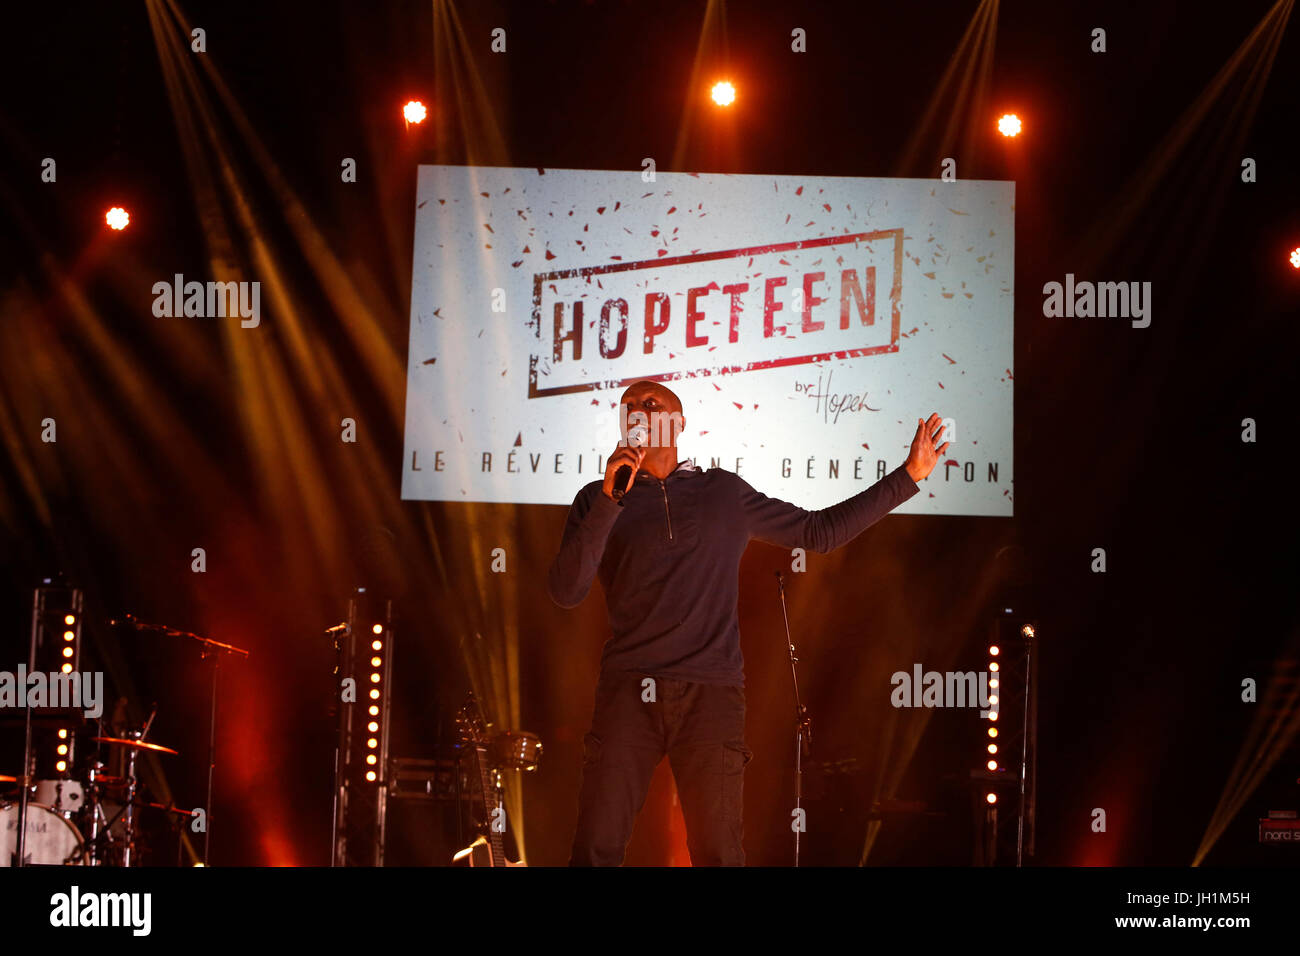 Hopeteen festival, Issy-les-Moulineaux, France. Stock Photo